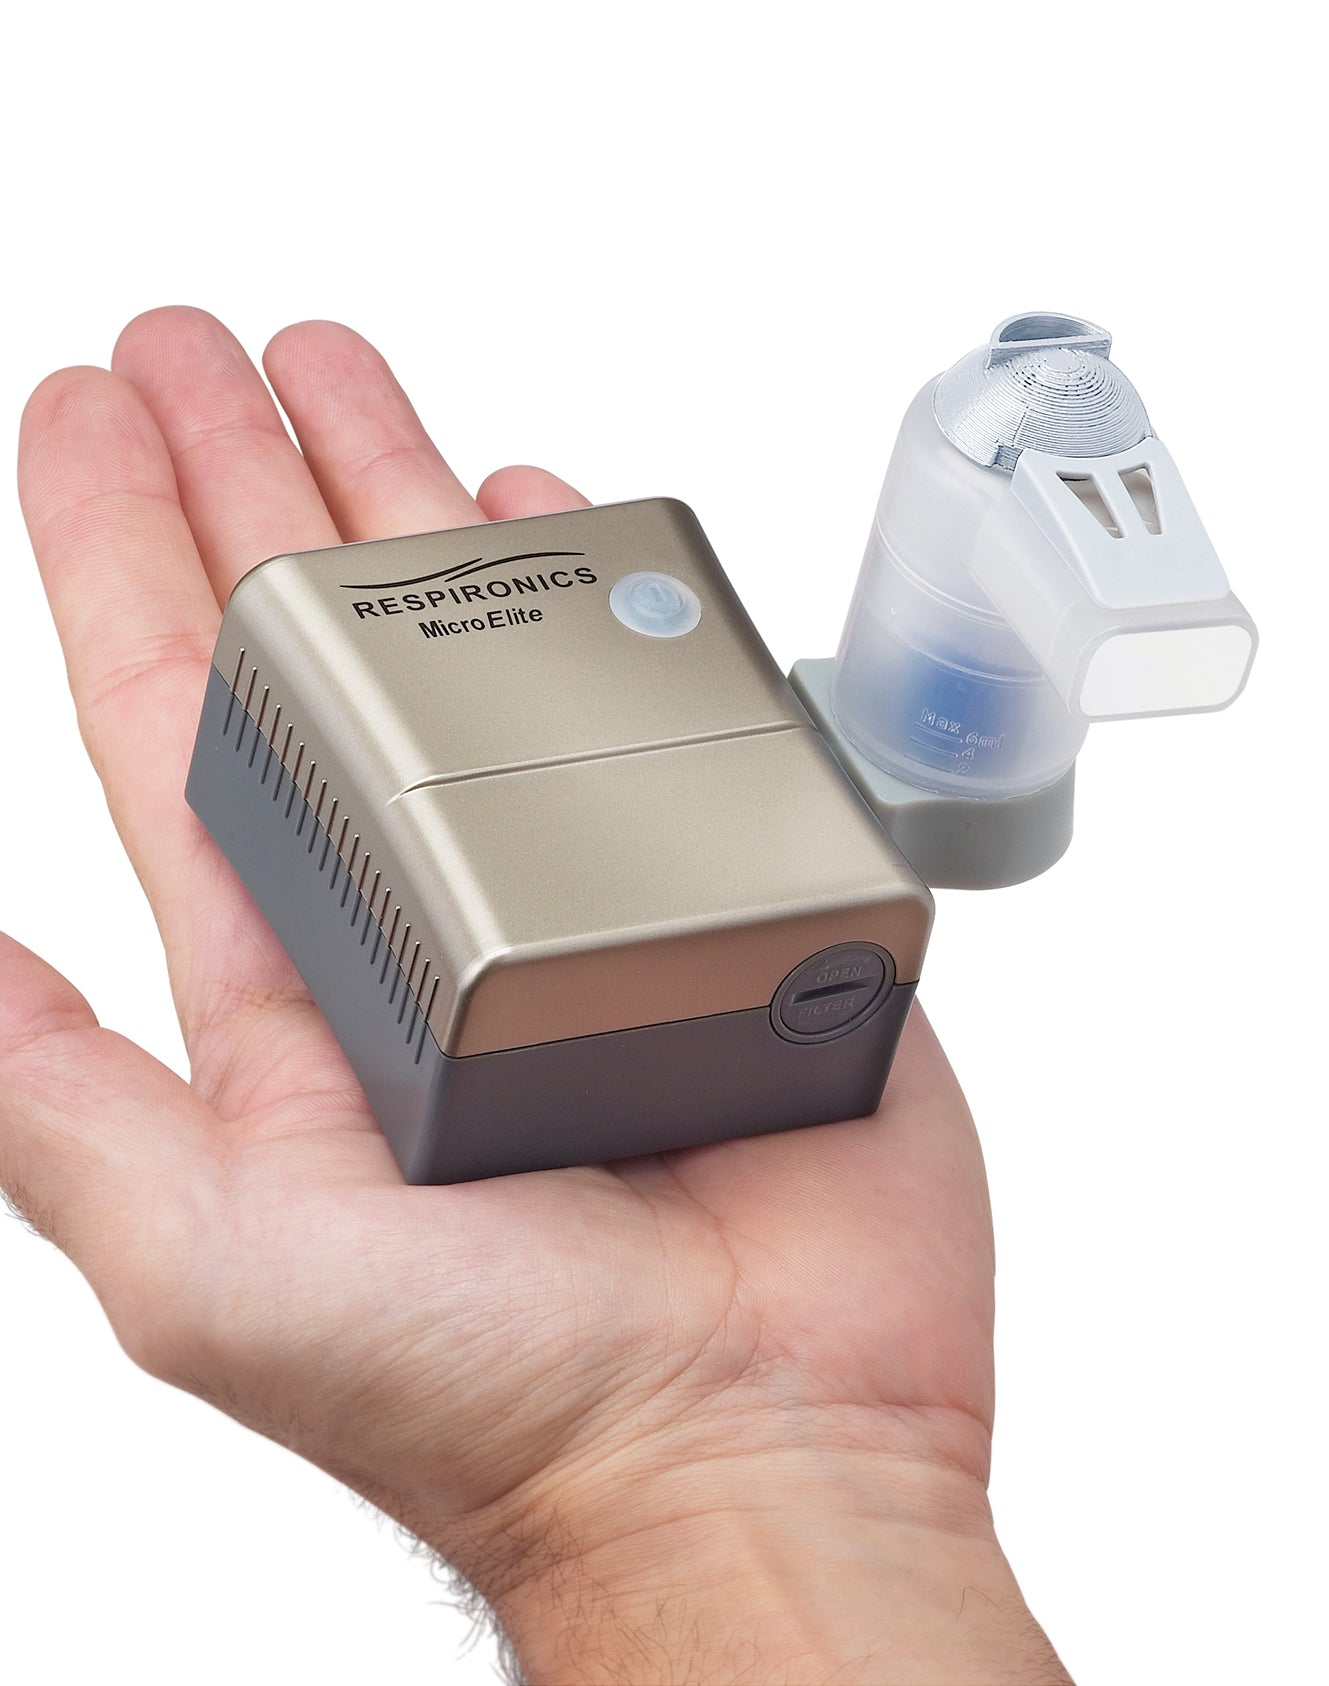 Respironics MicroElite Nebulizer System (with battery)